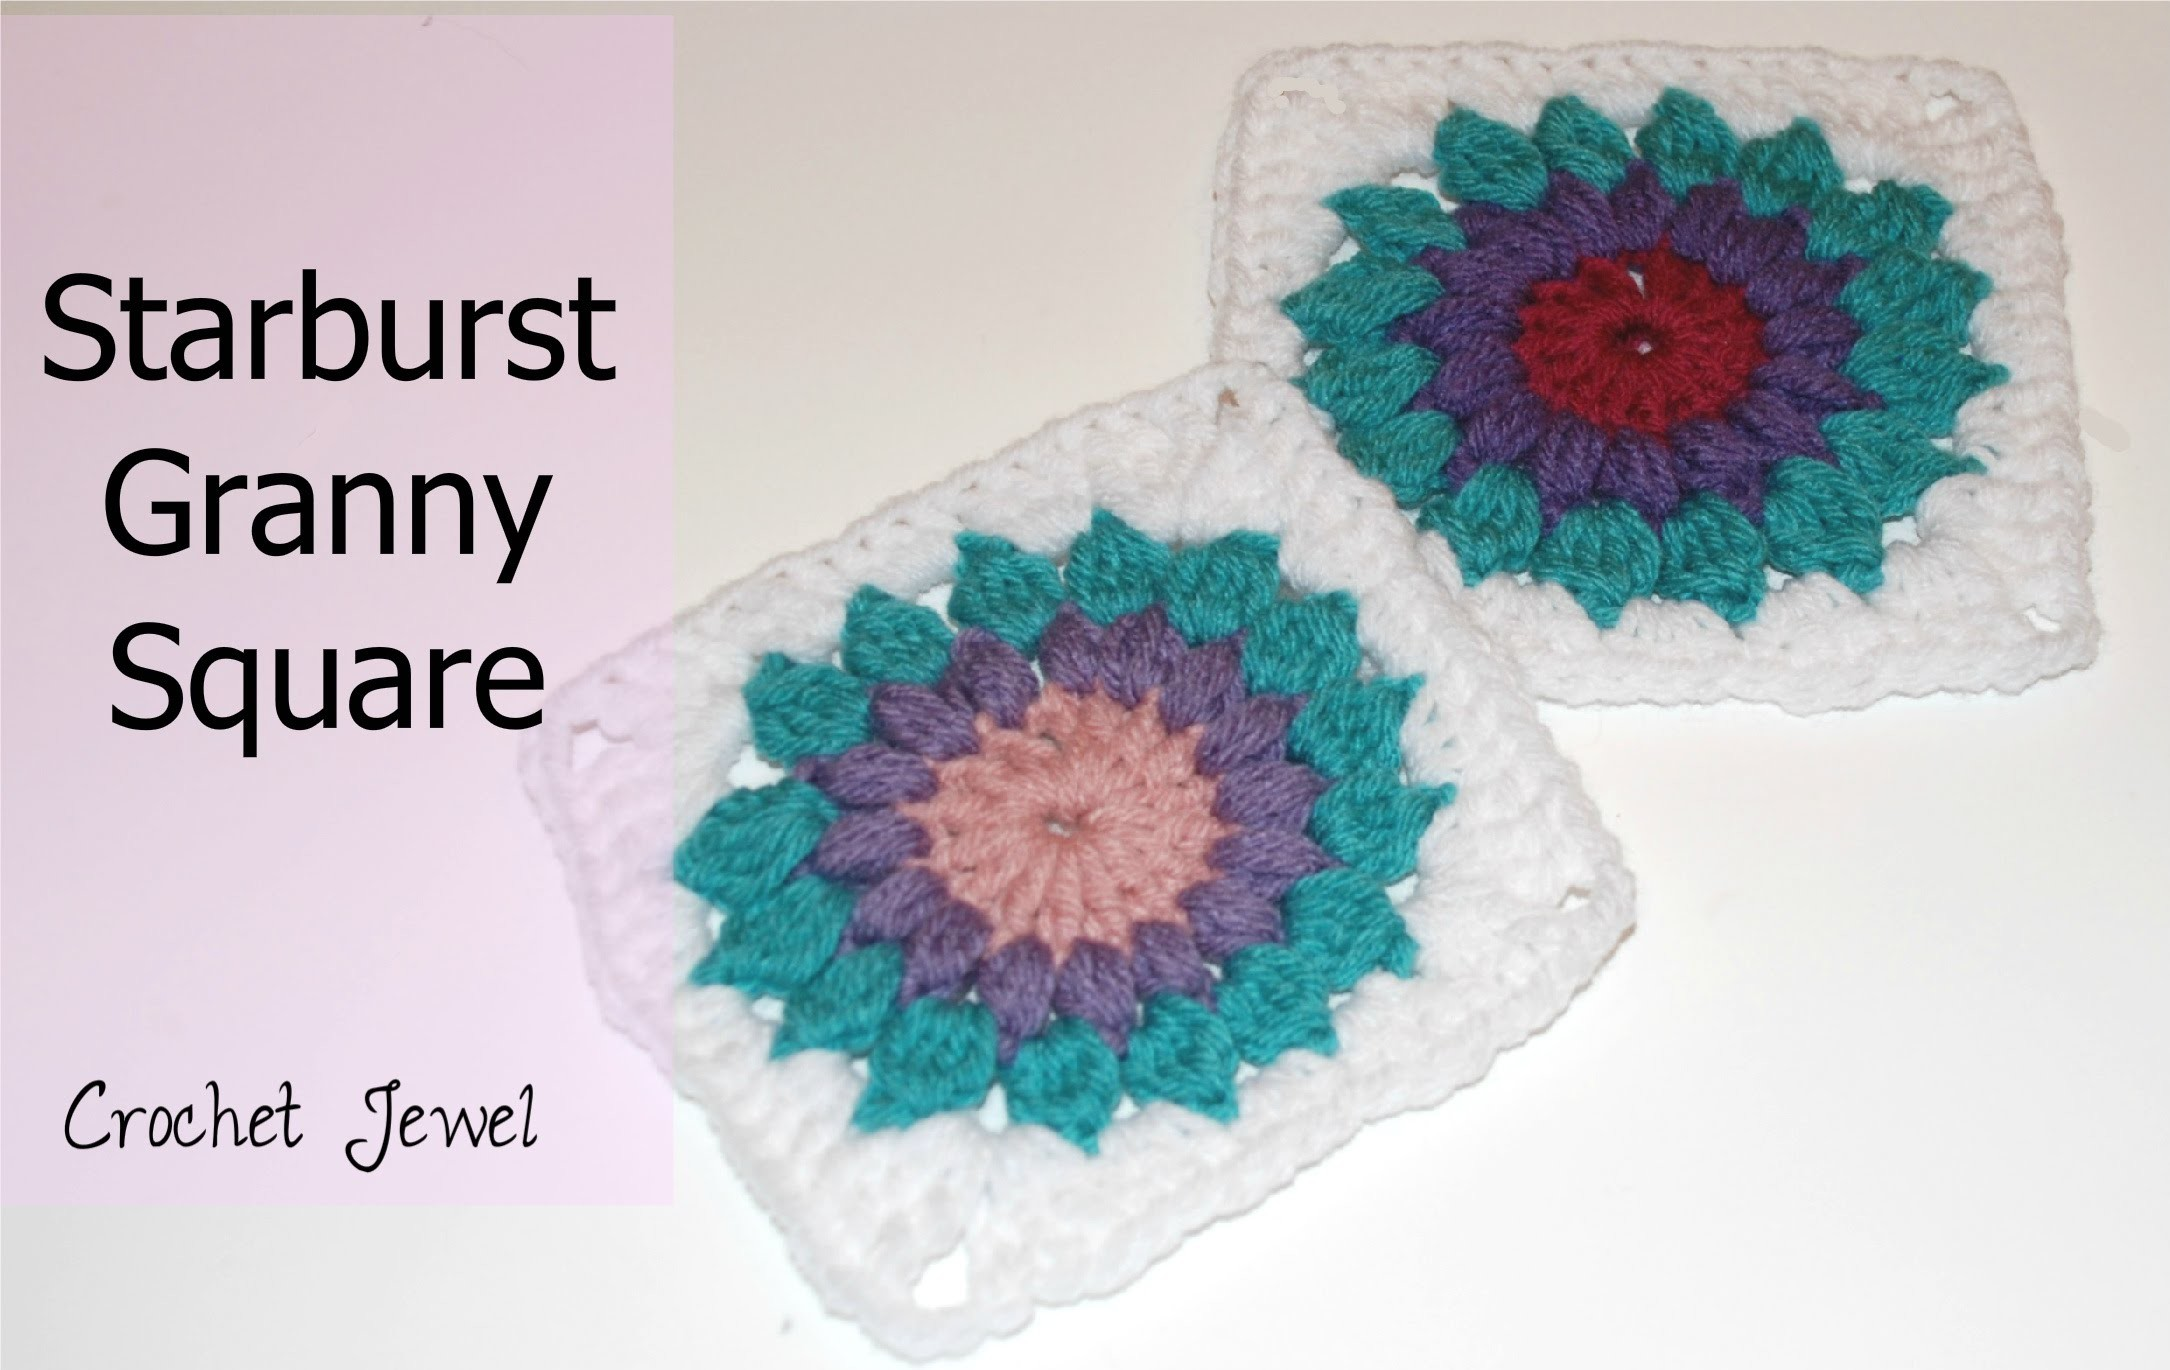 Crochet a Starburst Granny Square Tutorial